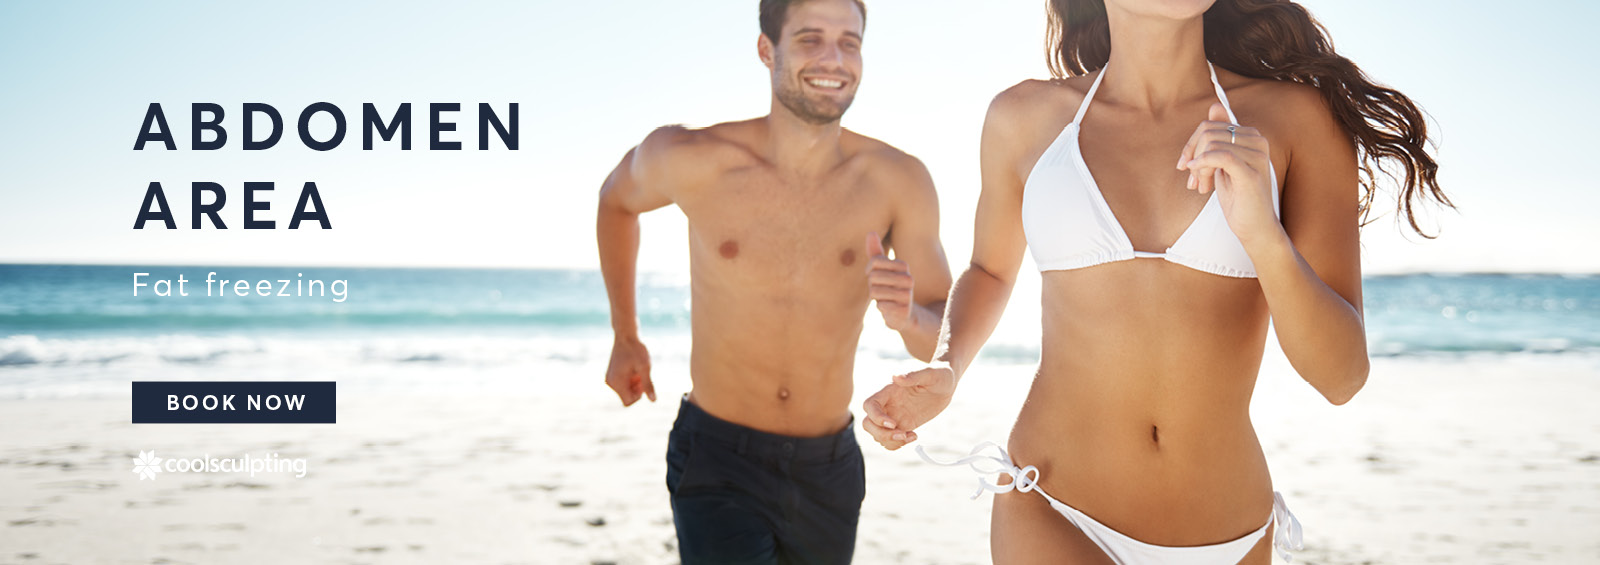 A banner image of male and female showing there abdomen area in there swimwear running on the beach for CoolSculpting treatment